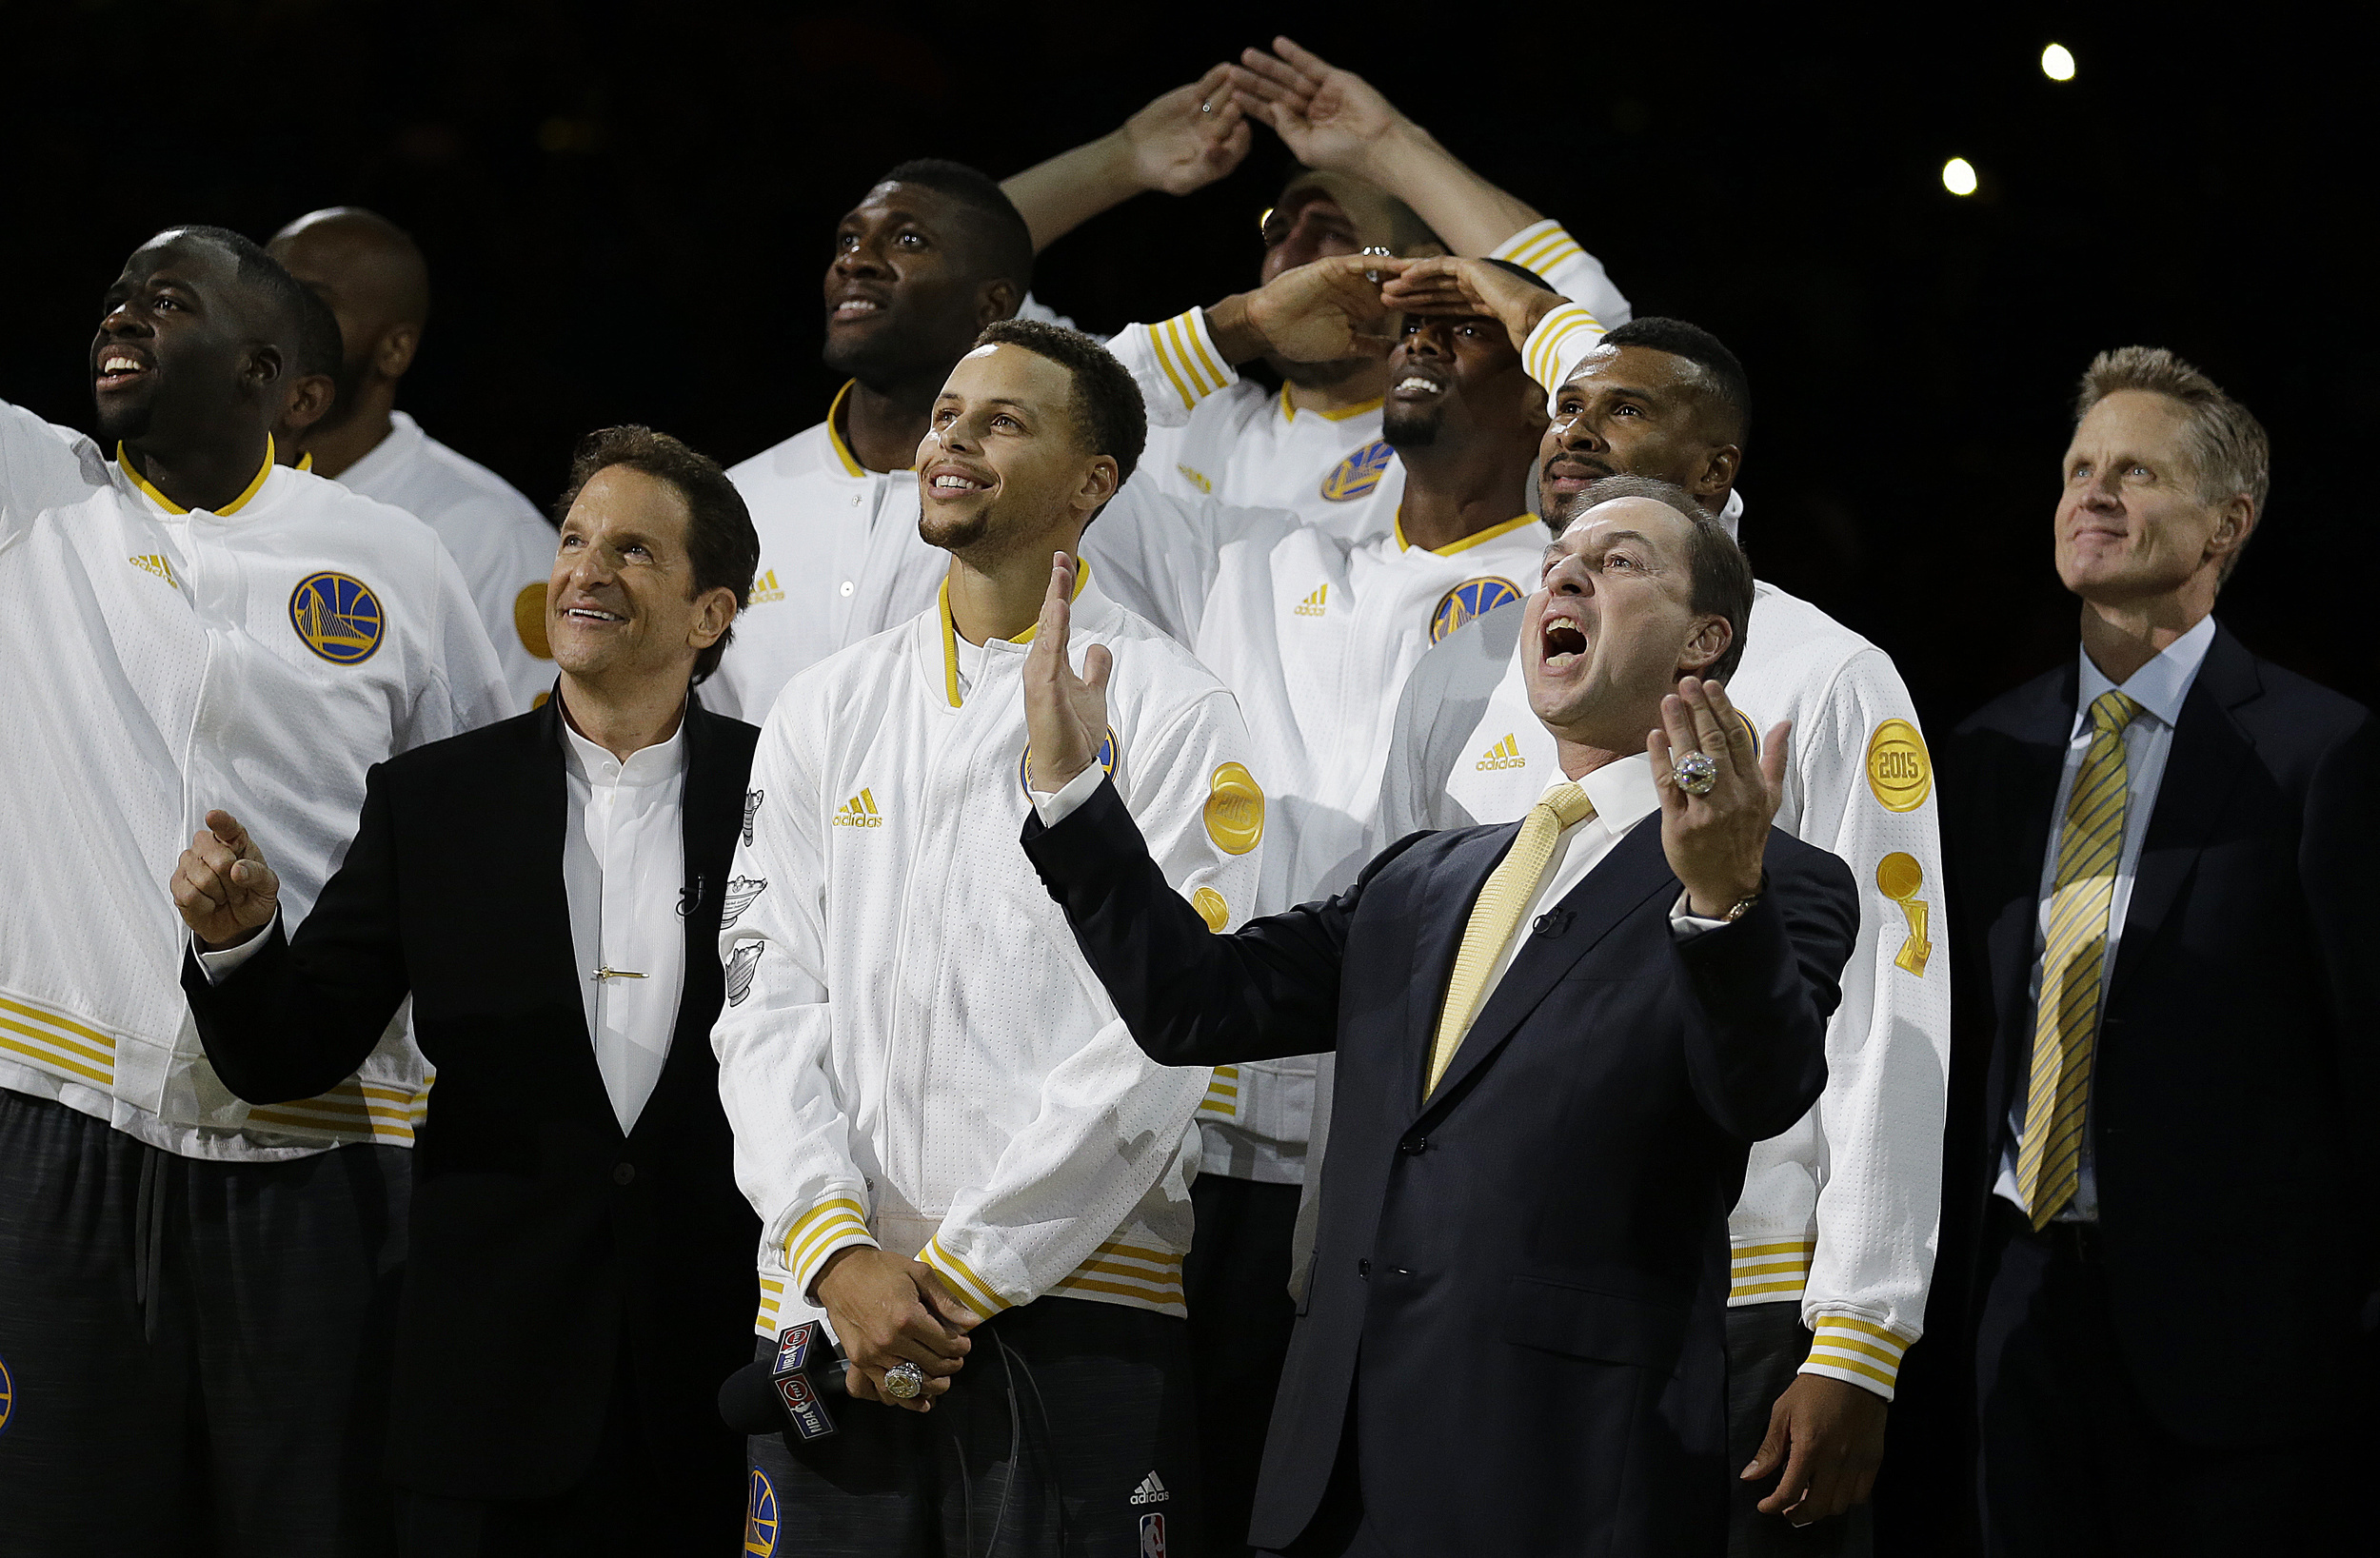 Golden State Warriors co-owner Joe Lacob, front right, reacts beside Stephen Curry and co-owner Peter Guber, second from left, as the Warriors championship banner is revealed during an awards ceremony to recognize the Warriors' NBA championship prior to a basketball game against the New Orleans Pelicans, Tuesday, Oct. 27, 2015, in Oakland, Calif. At right is Warriors coach Steve Kerr. (Ben Margot/AP)